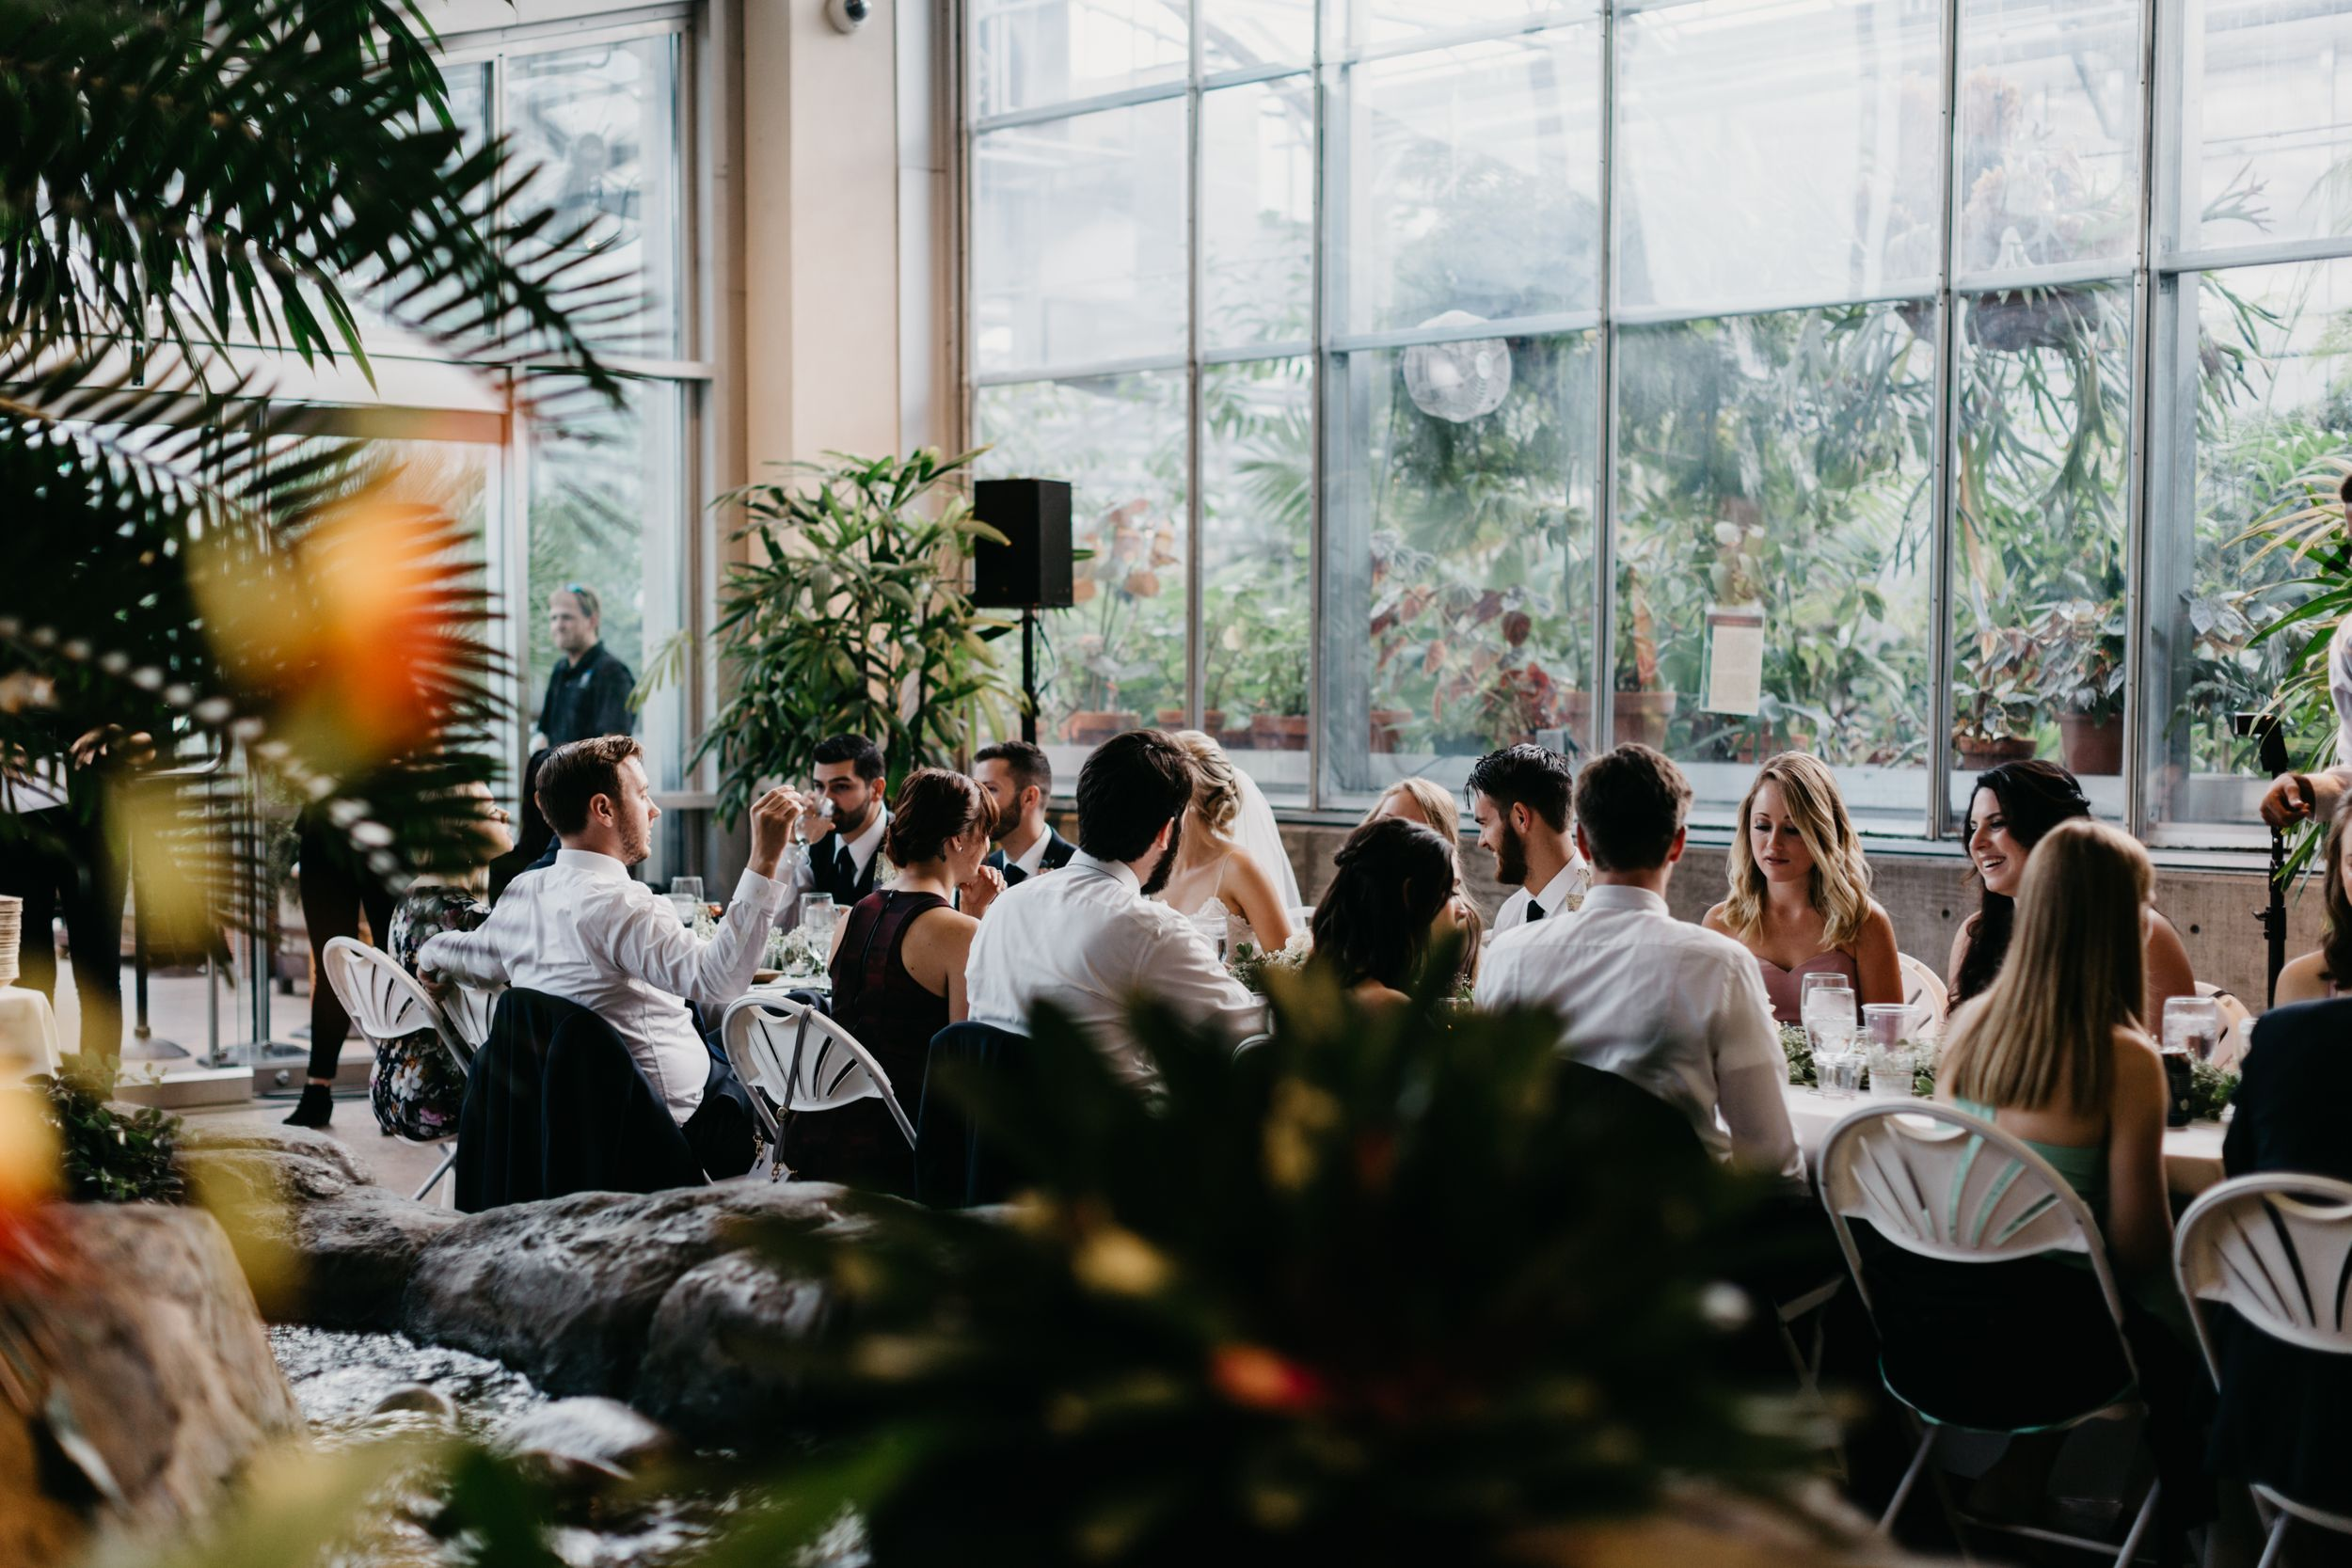 Wedding Reception at Marnie's Pavilion at Denver Botanic Gardens